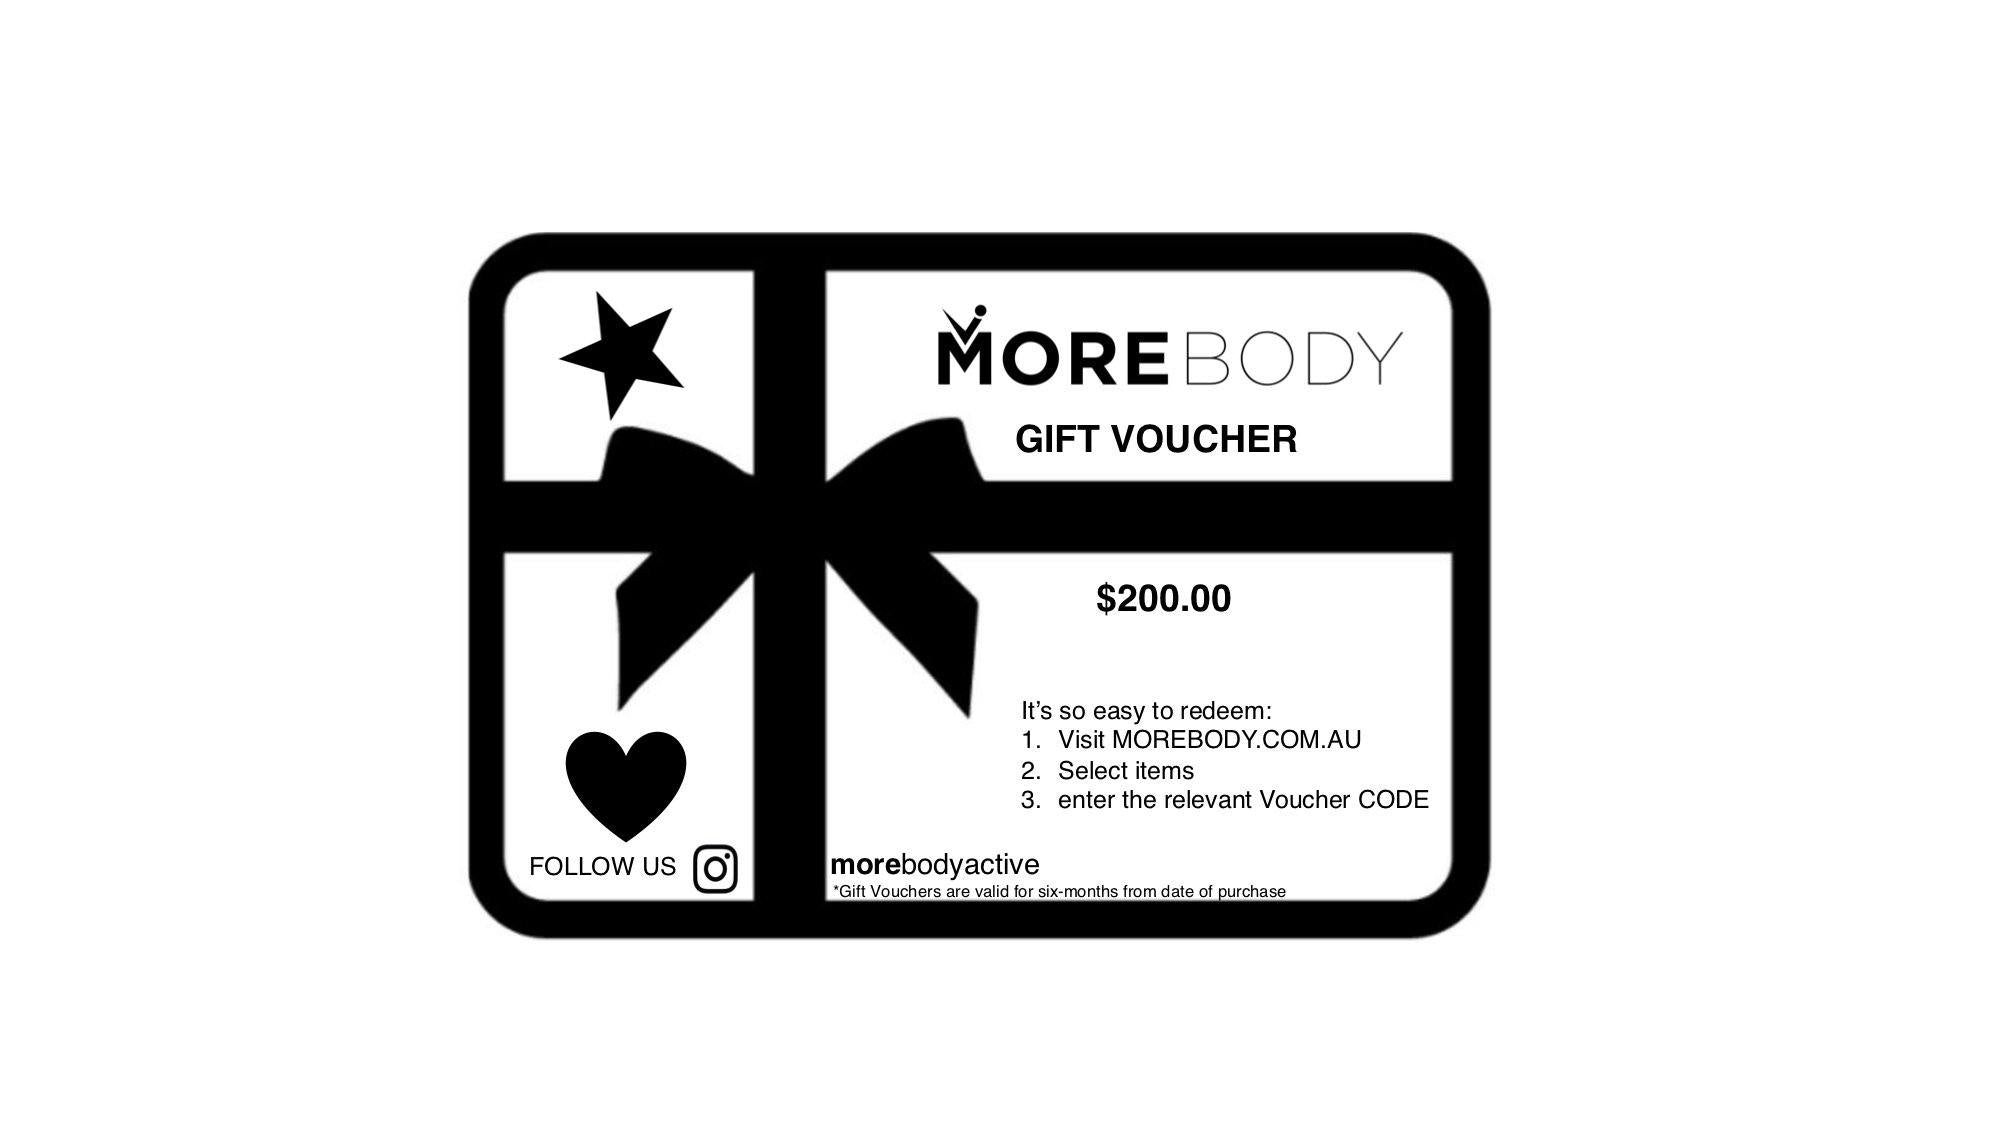 Gift Voucher $200.00 - More Body